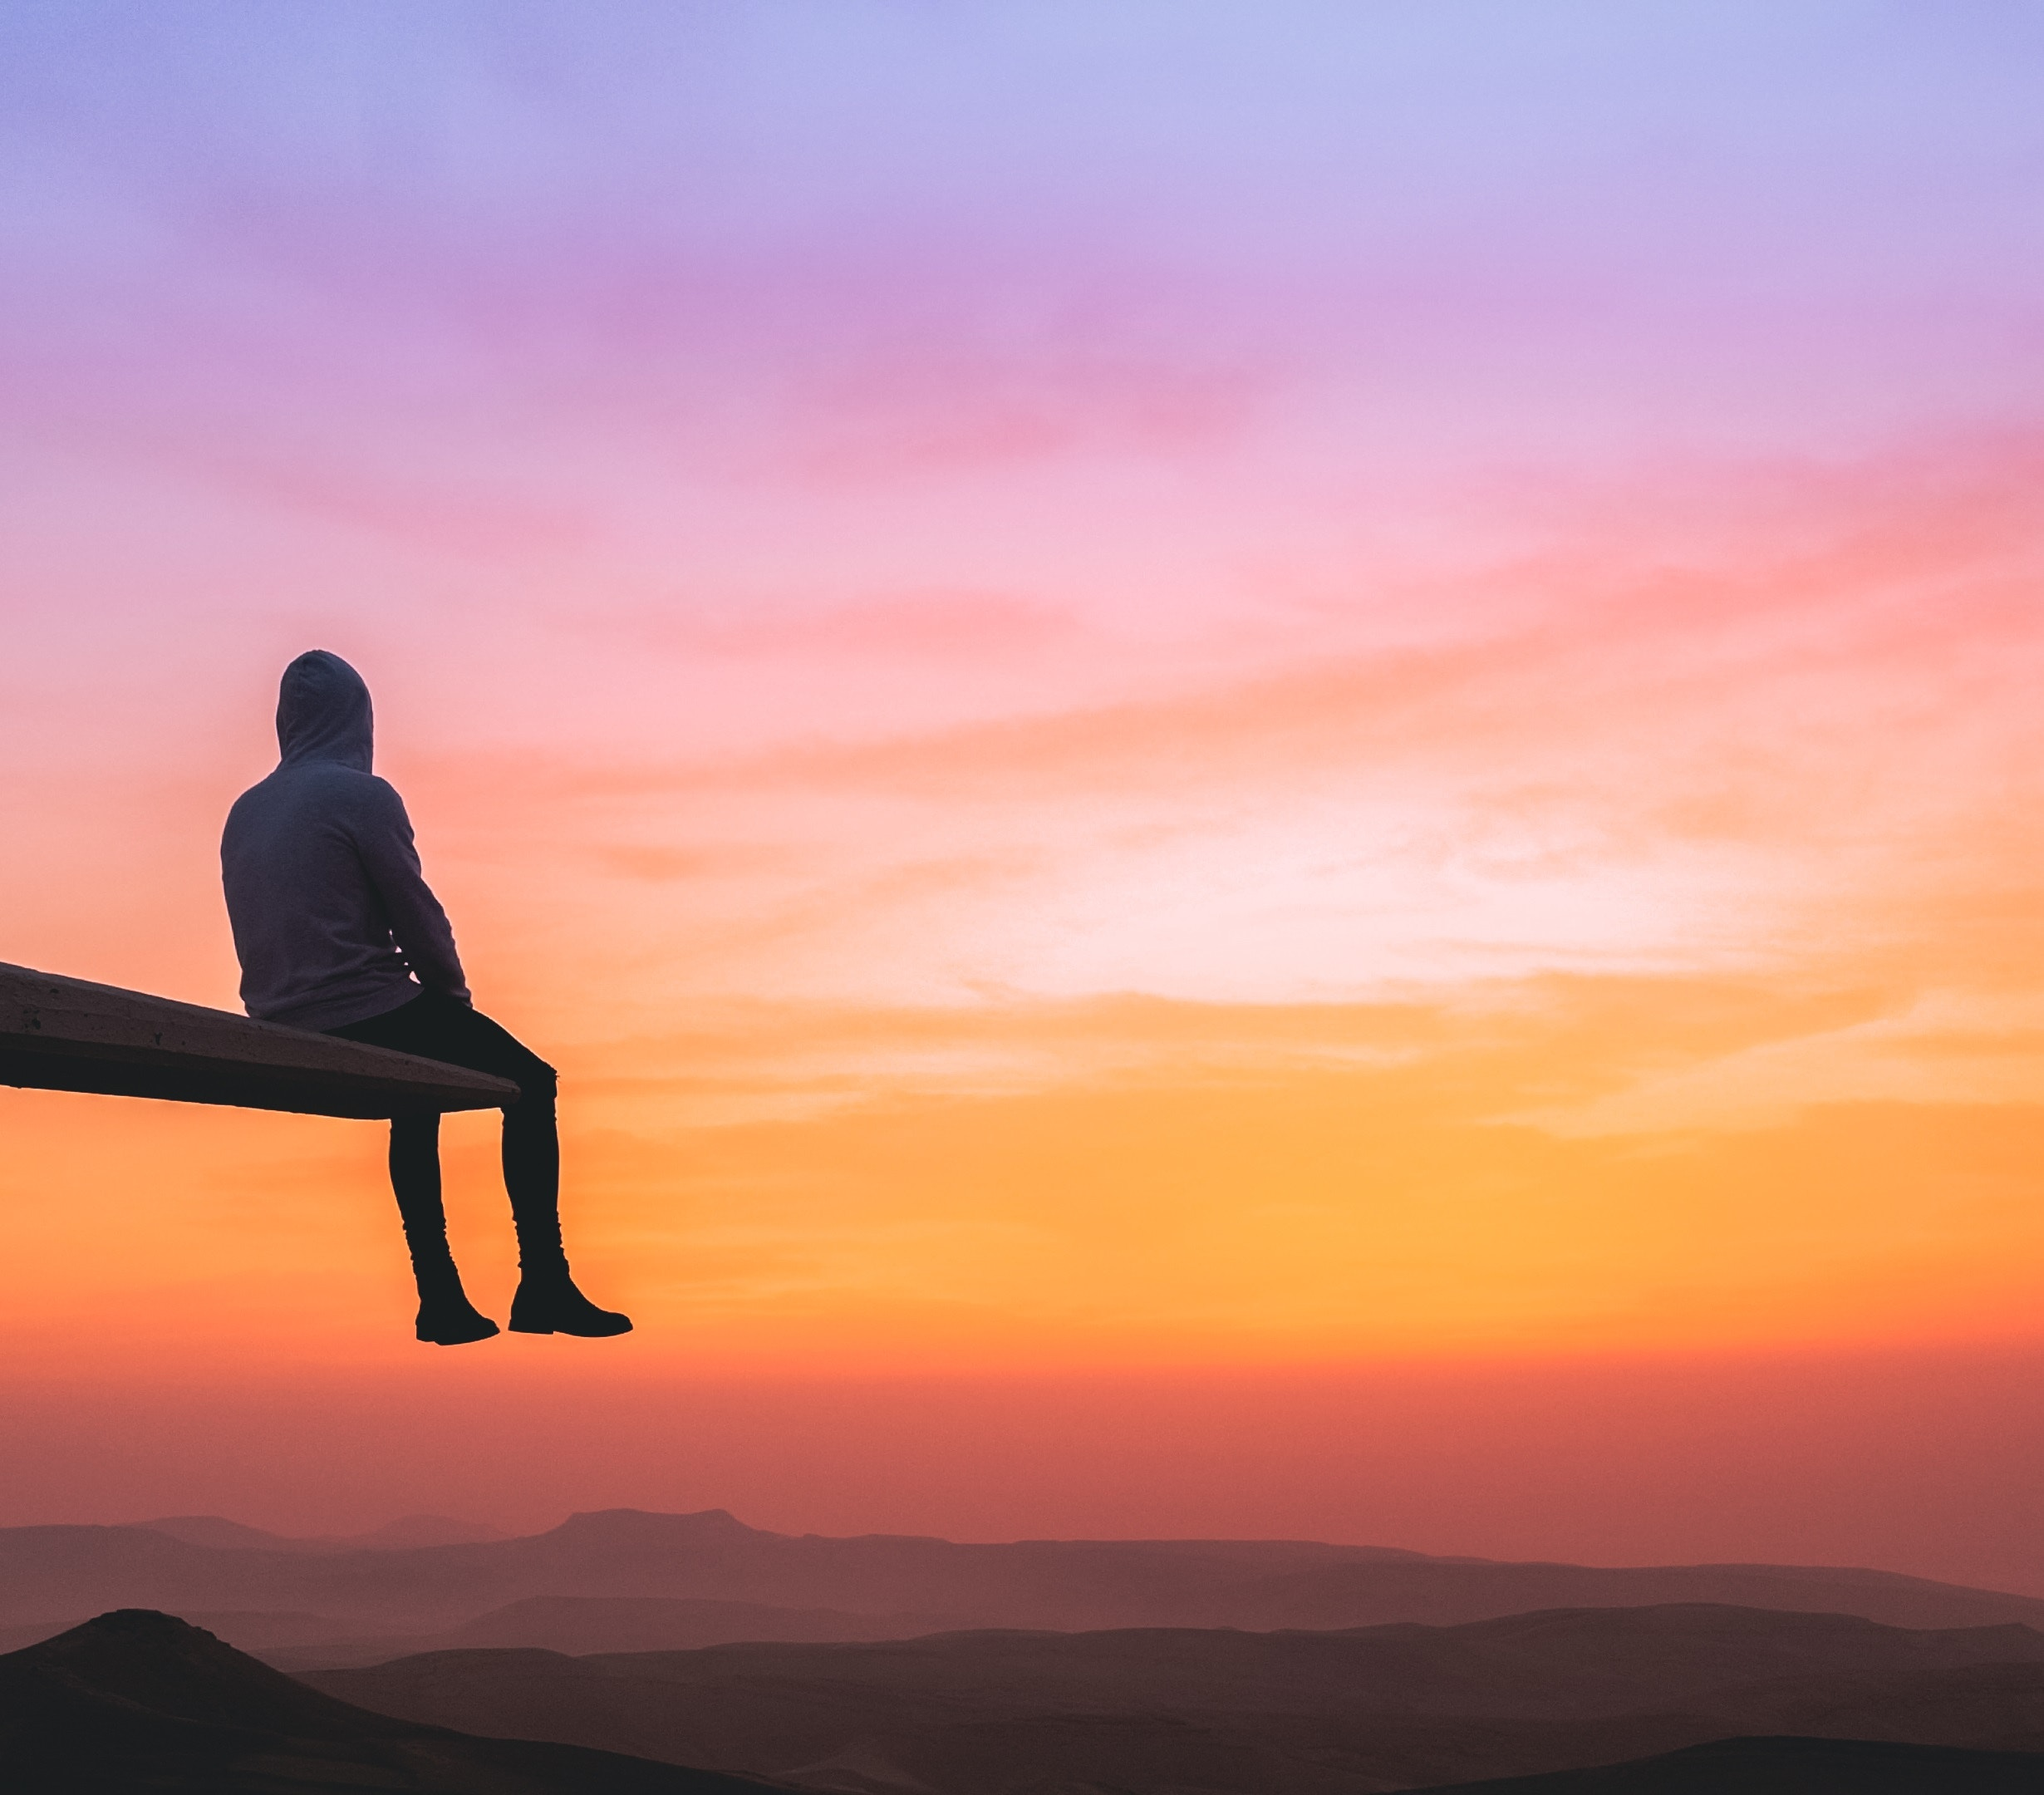 71064 Screensavers and Wallpapers Human for phone. Download Loneliness, Sunset, Mountains, Privacy, Seclusion, Miscellanea, Miscellaneous, Overview, Review, Height, Human, Person pictures for free